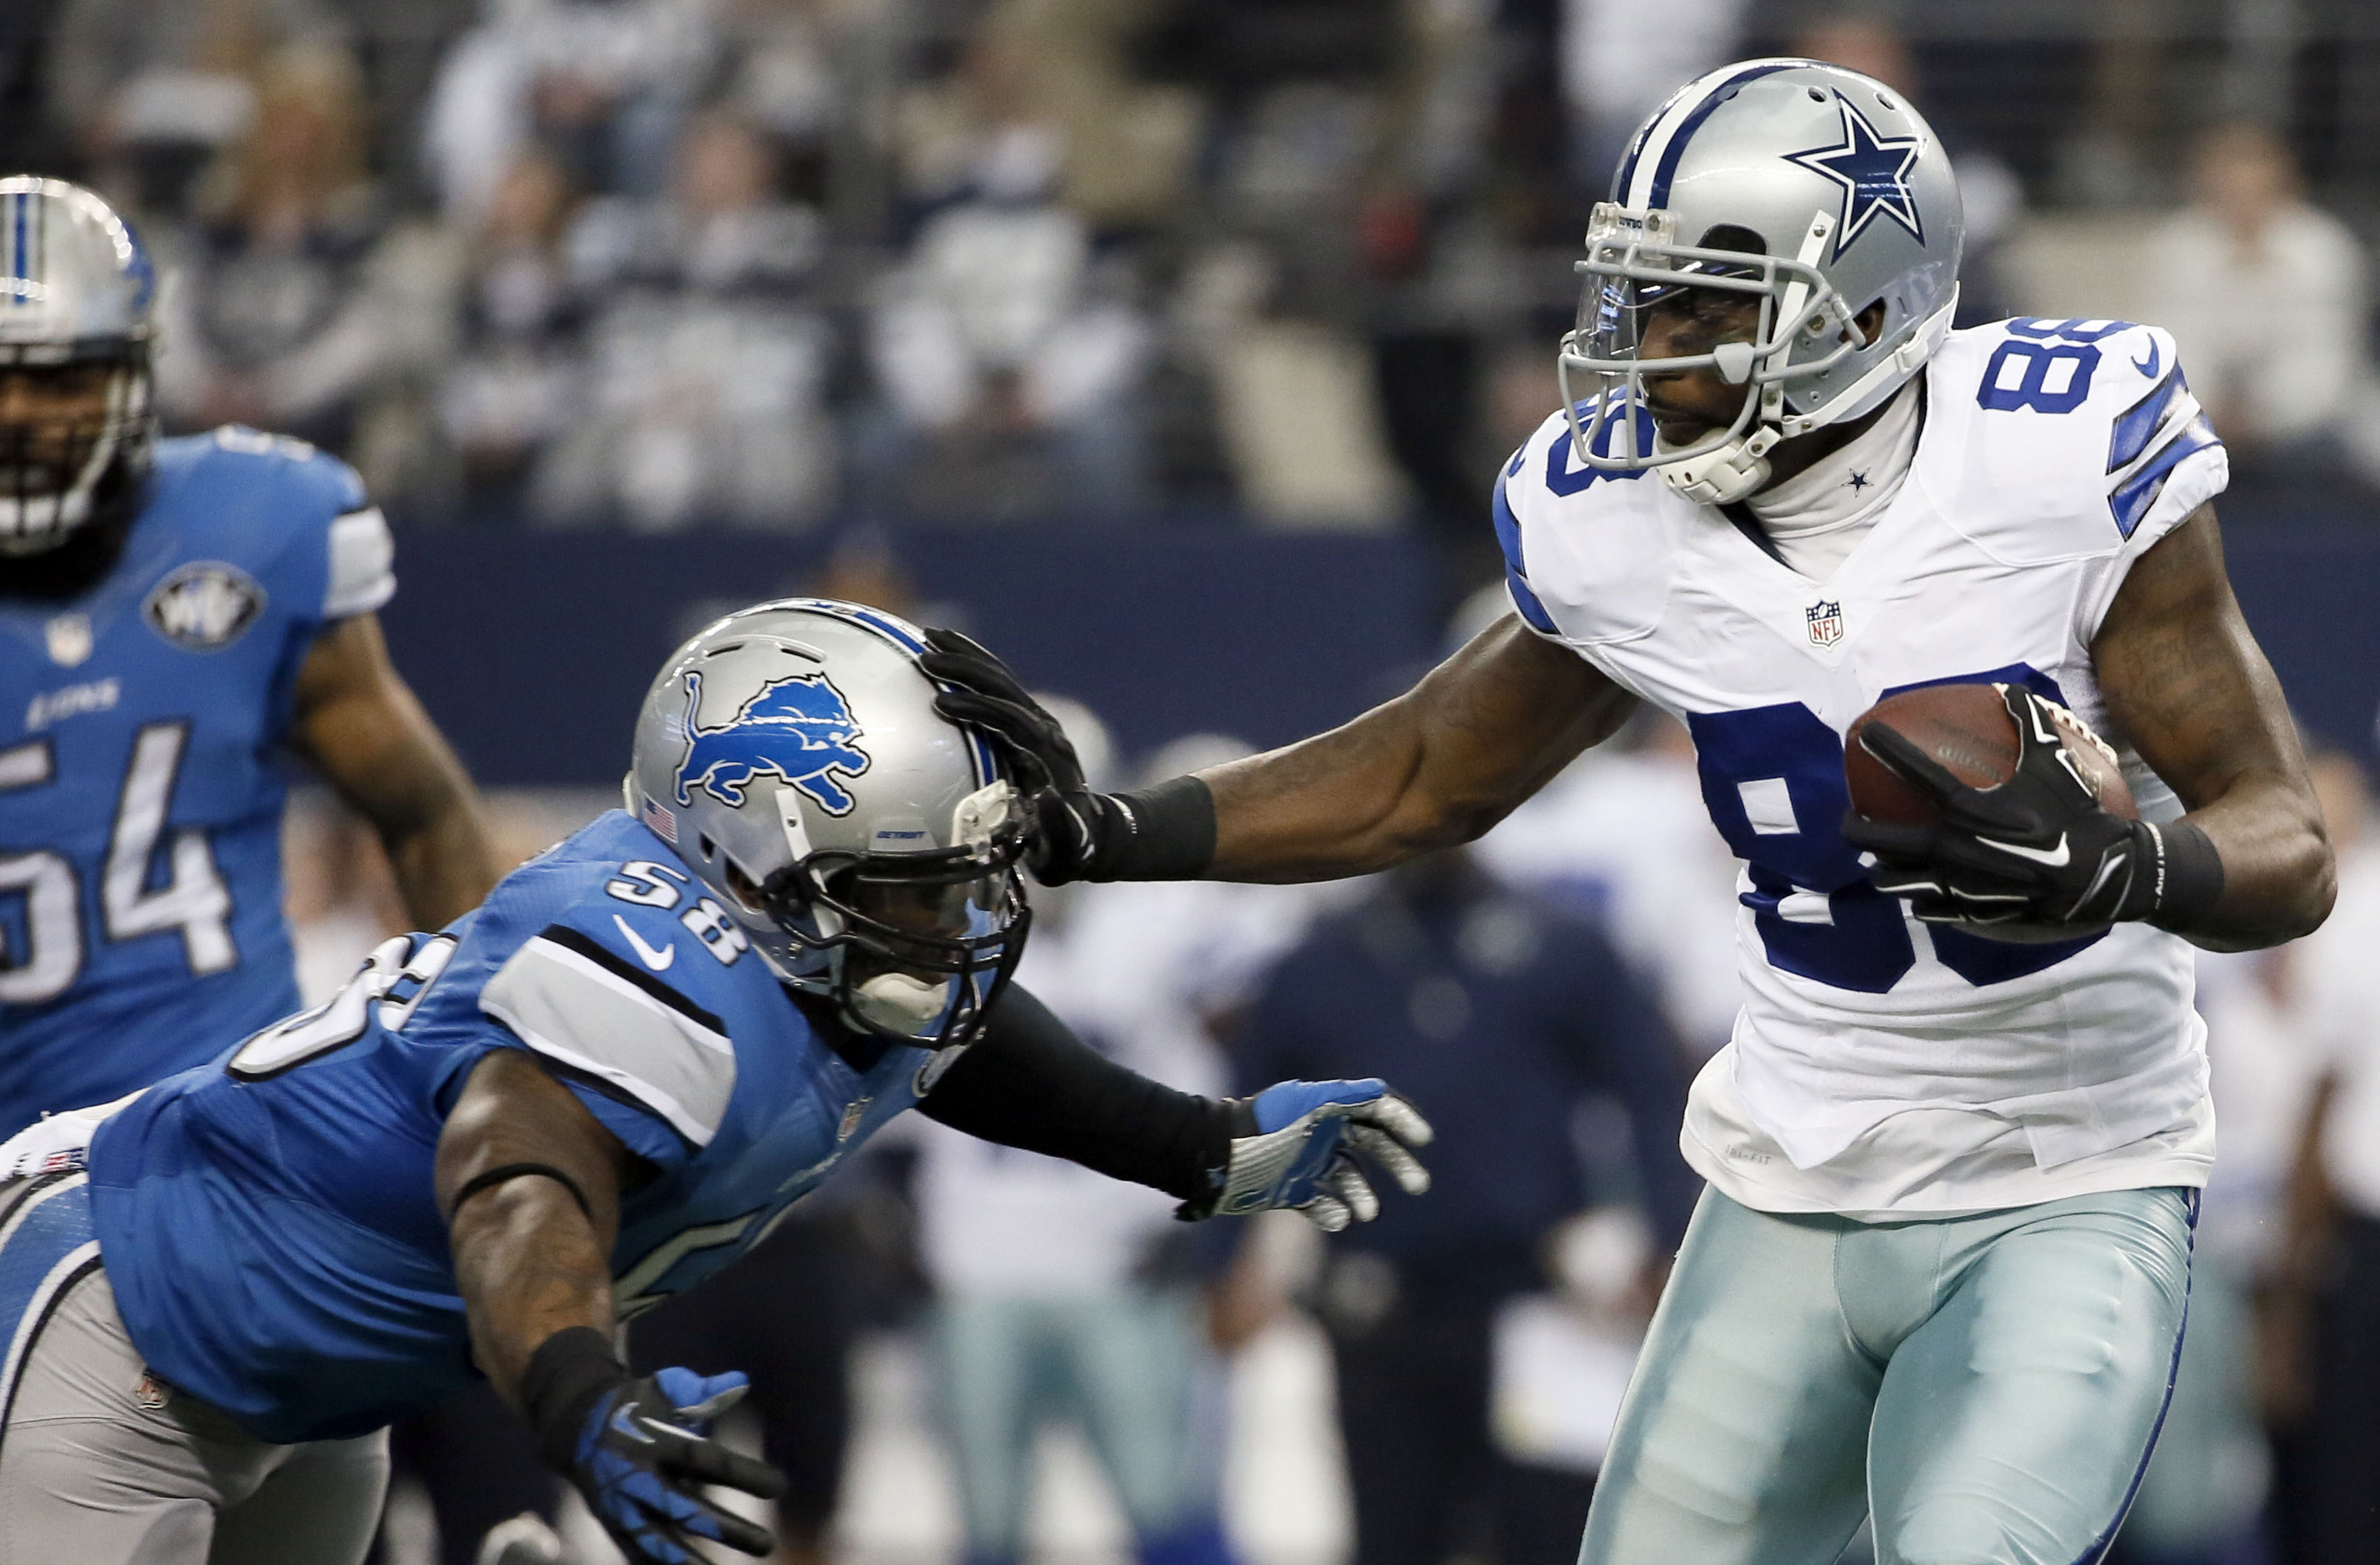 FILE - In this Sunday, Jan. 4, 2015, file photo, Dallas Cowboys wide receiver Dez Bryant (88) carries the ball against Detroit Lions outside linebacker Ashlee Palmer (58) during the first half of an NFL wildcard playoff football game in Arlington, Texas.